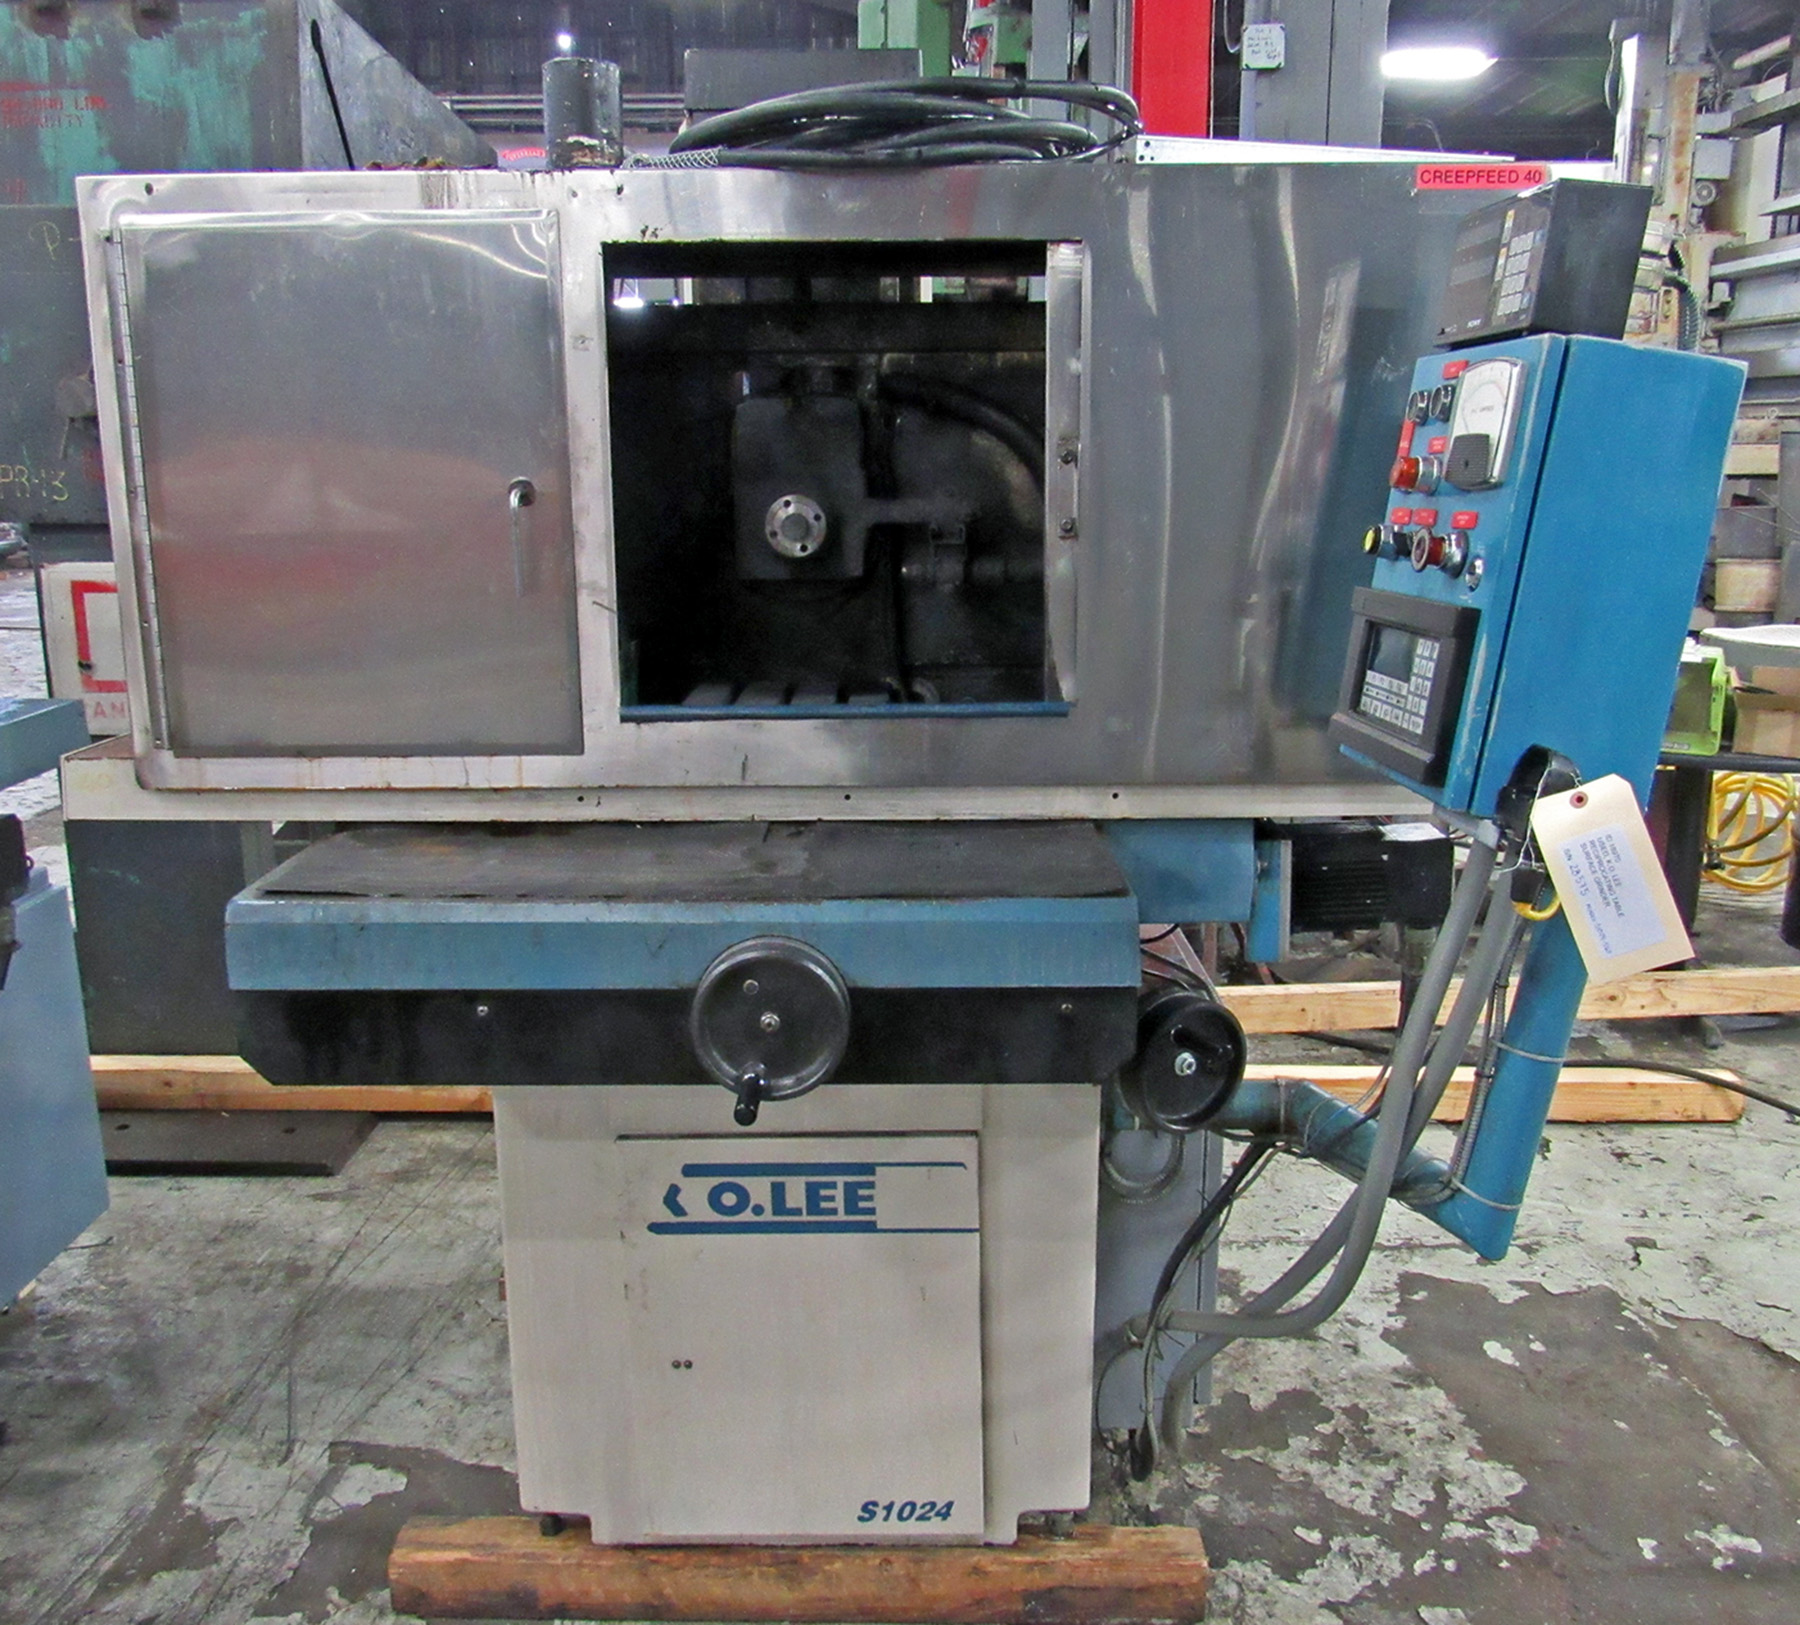 USED, K.O. LEE MODEL S1024-550 RECIPROCATING SURFACE GRINDER WITH POWER DOWNFEED AND CRUSH FEED CAPABILITIES